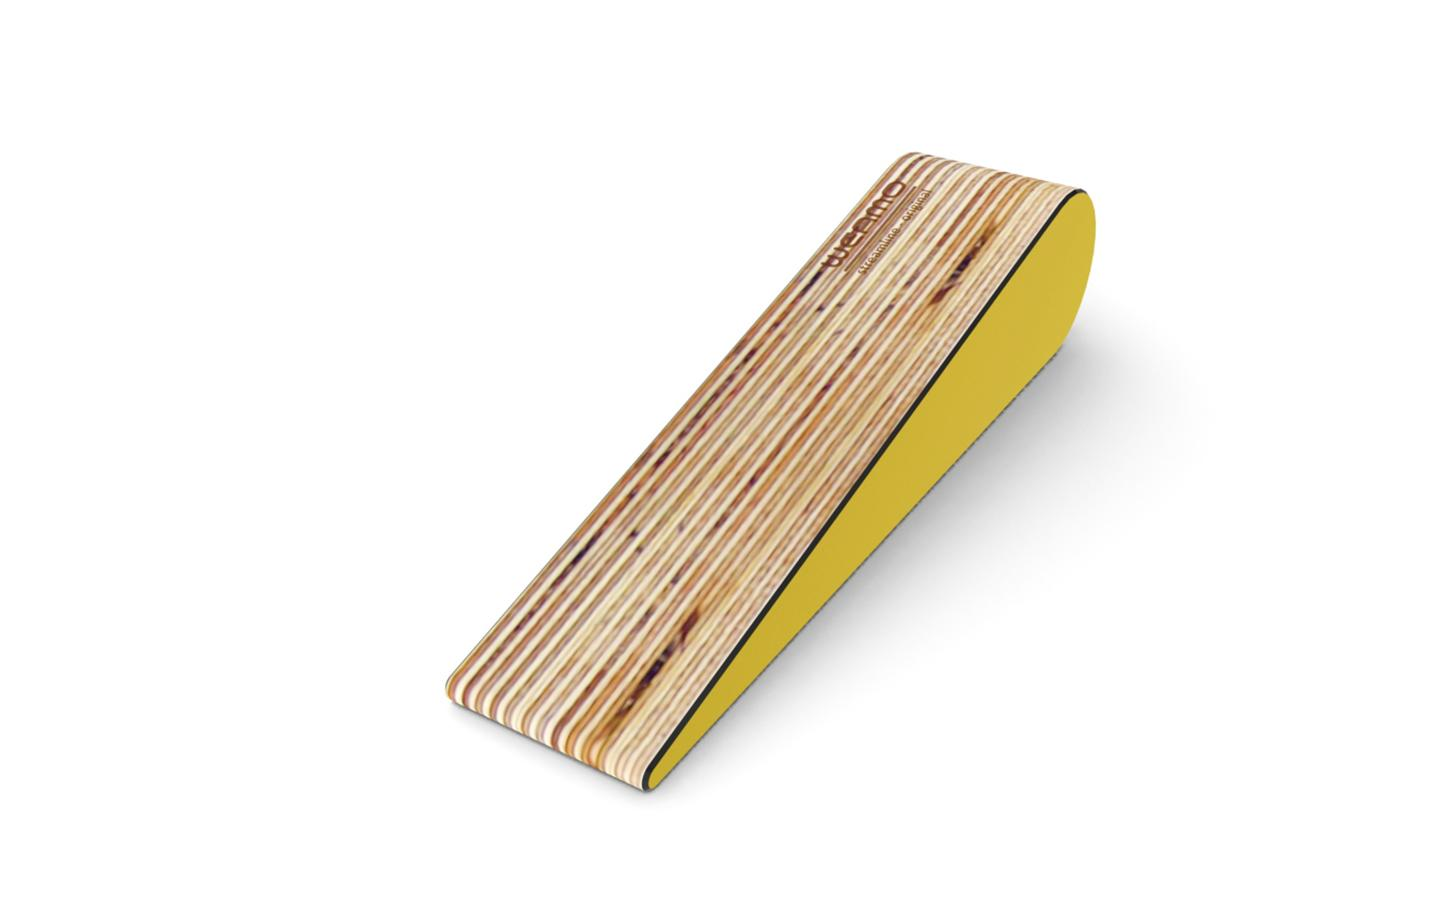 Streamline Original Doorstop - Sunflower Yellow